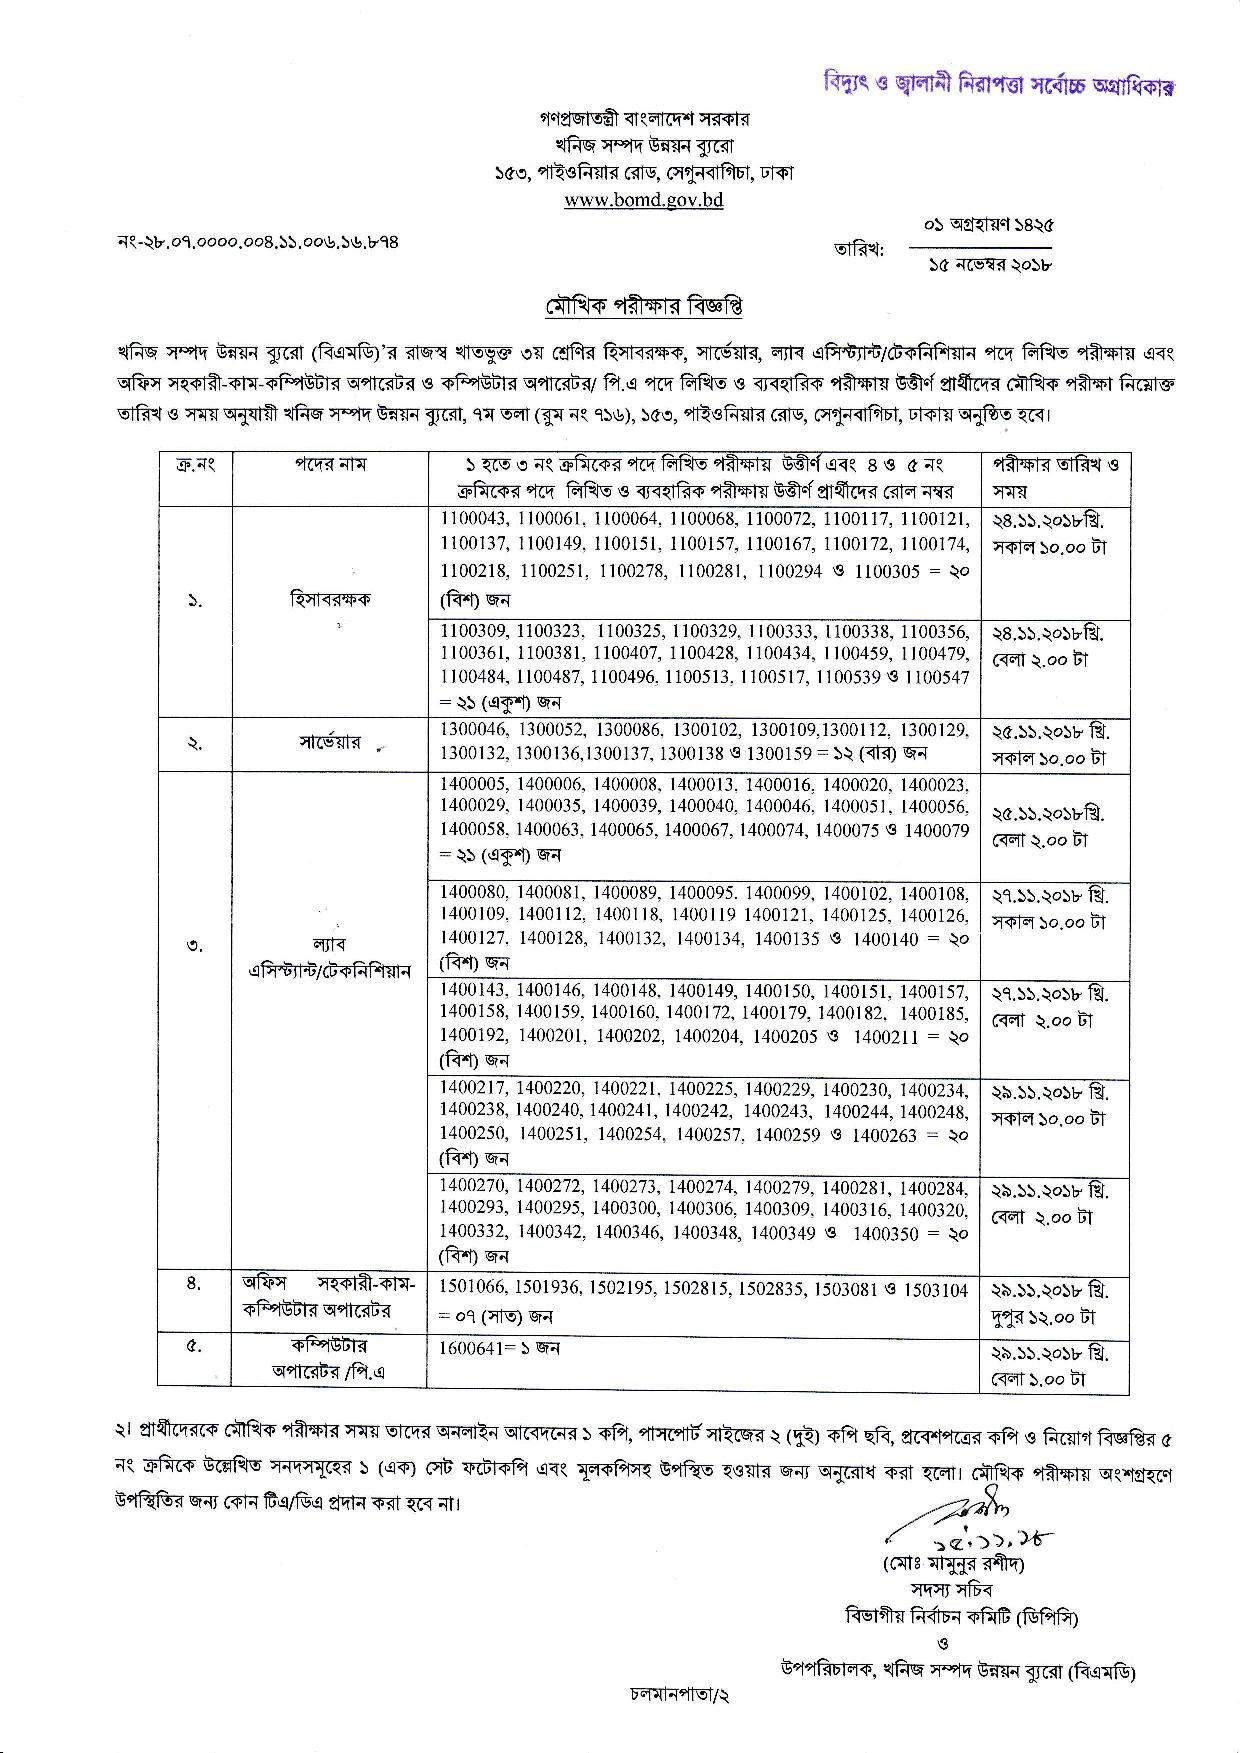 Bureau of Mineral Development (BOMD) Viva Date Exam Result 2018